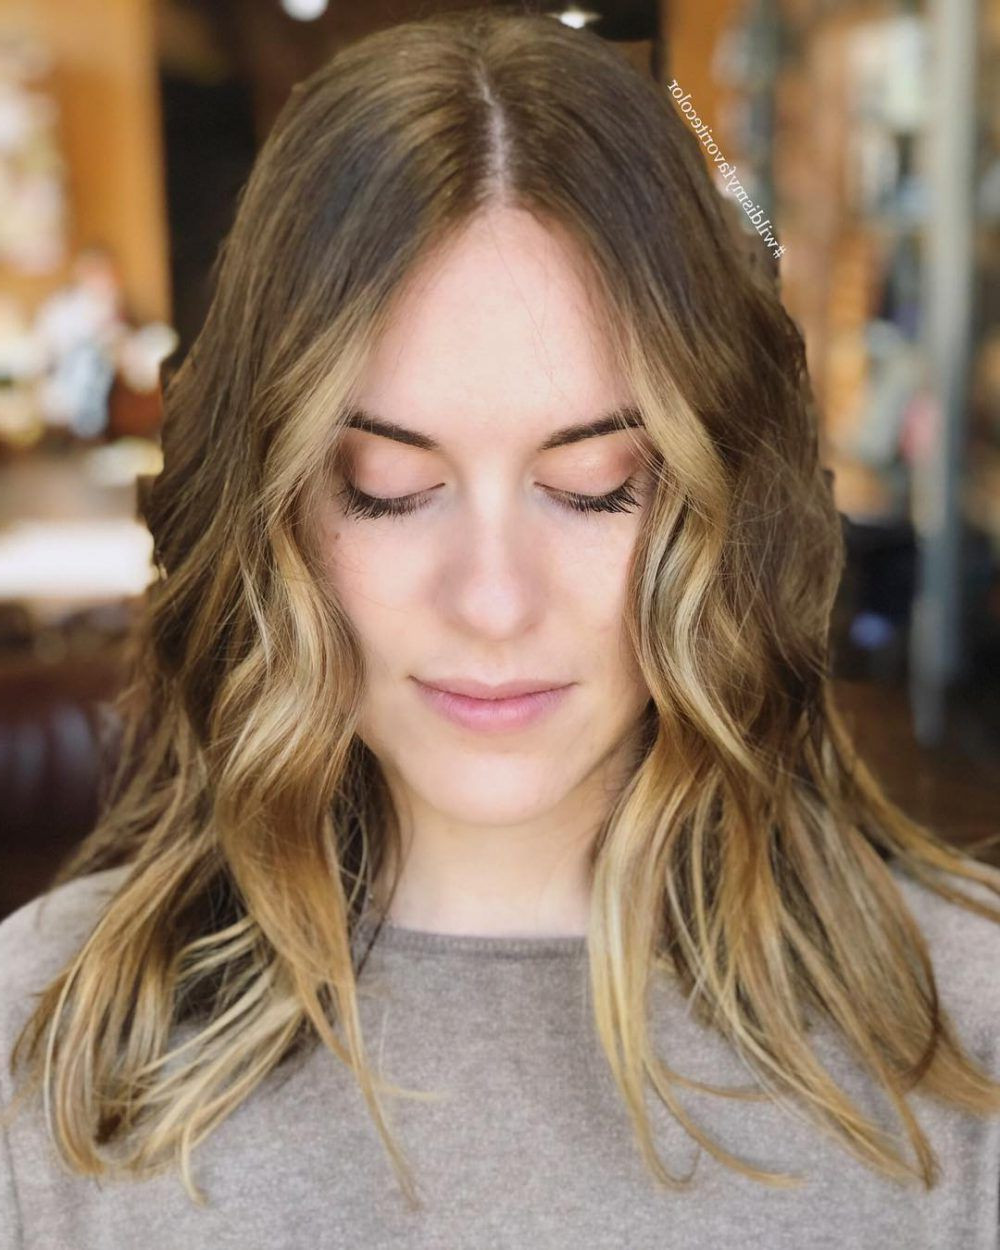 Best ideas about Flattering Hairstyles For Fat Faces . Save or Pin 2019 Popular Flattering Medium Haircuts For Fat Faces Now.